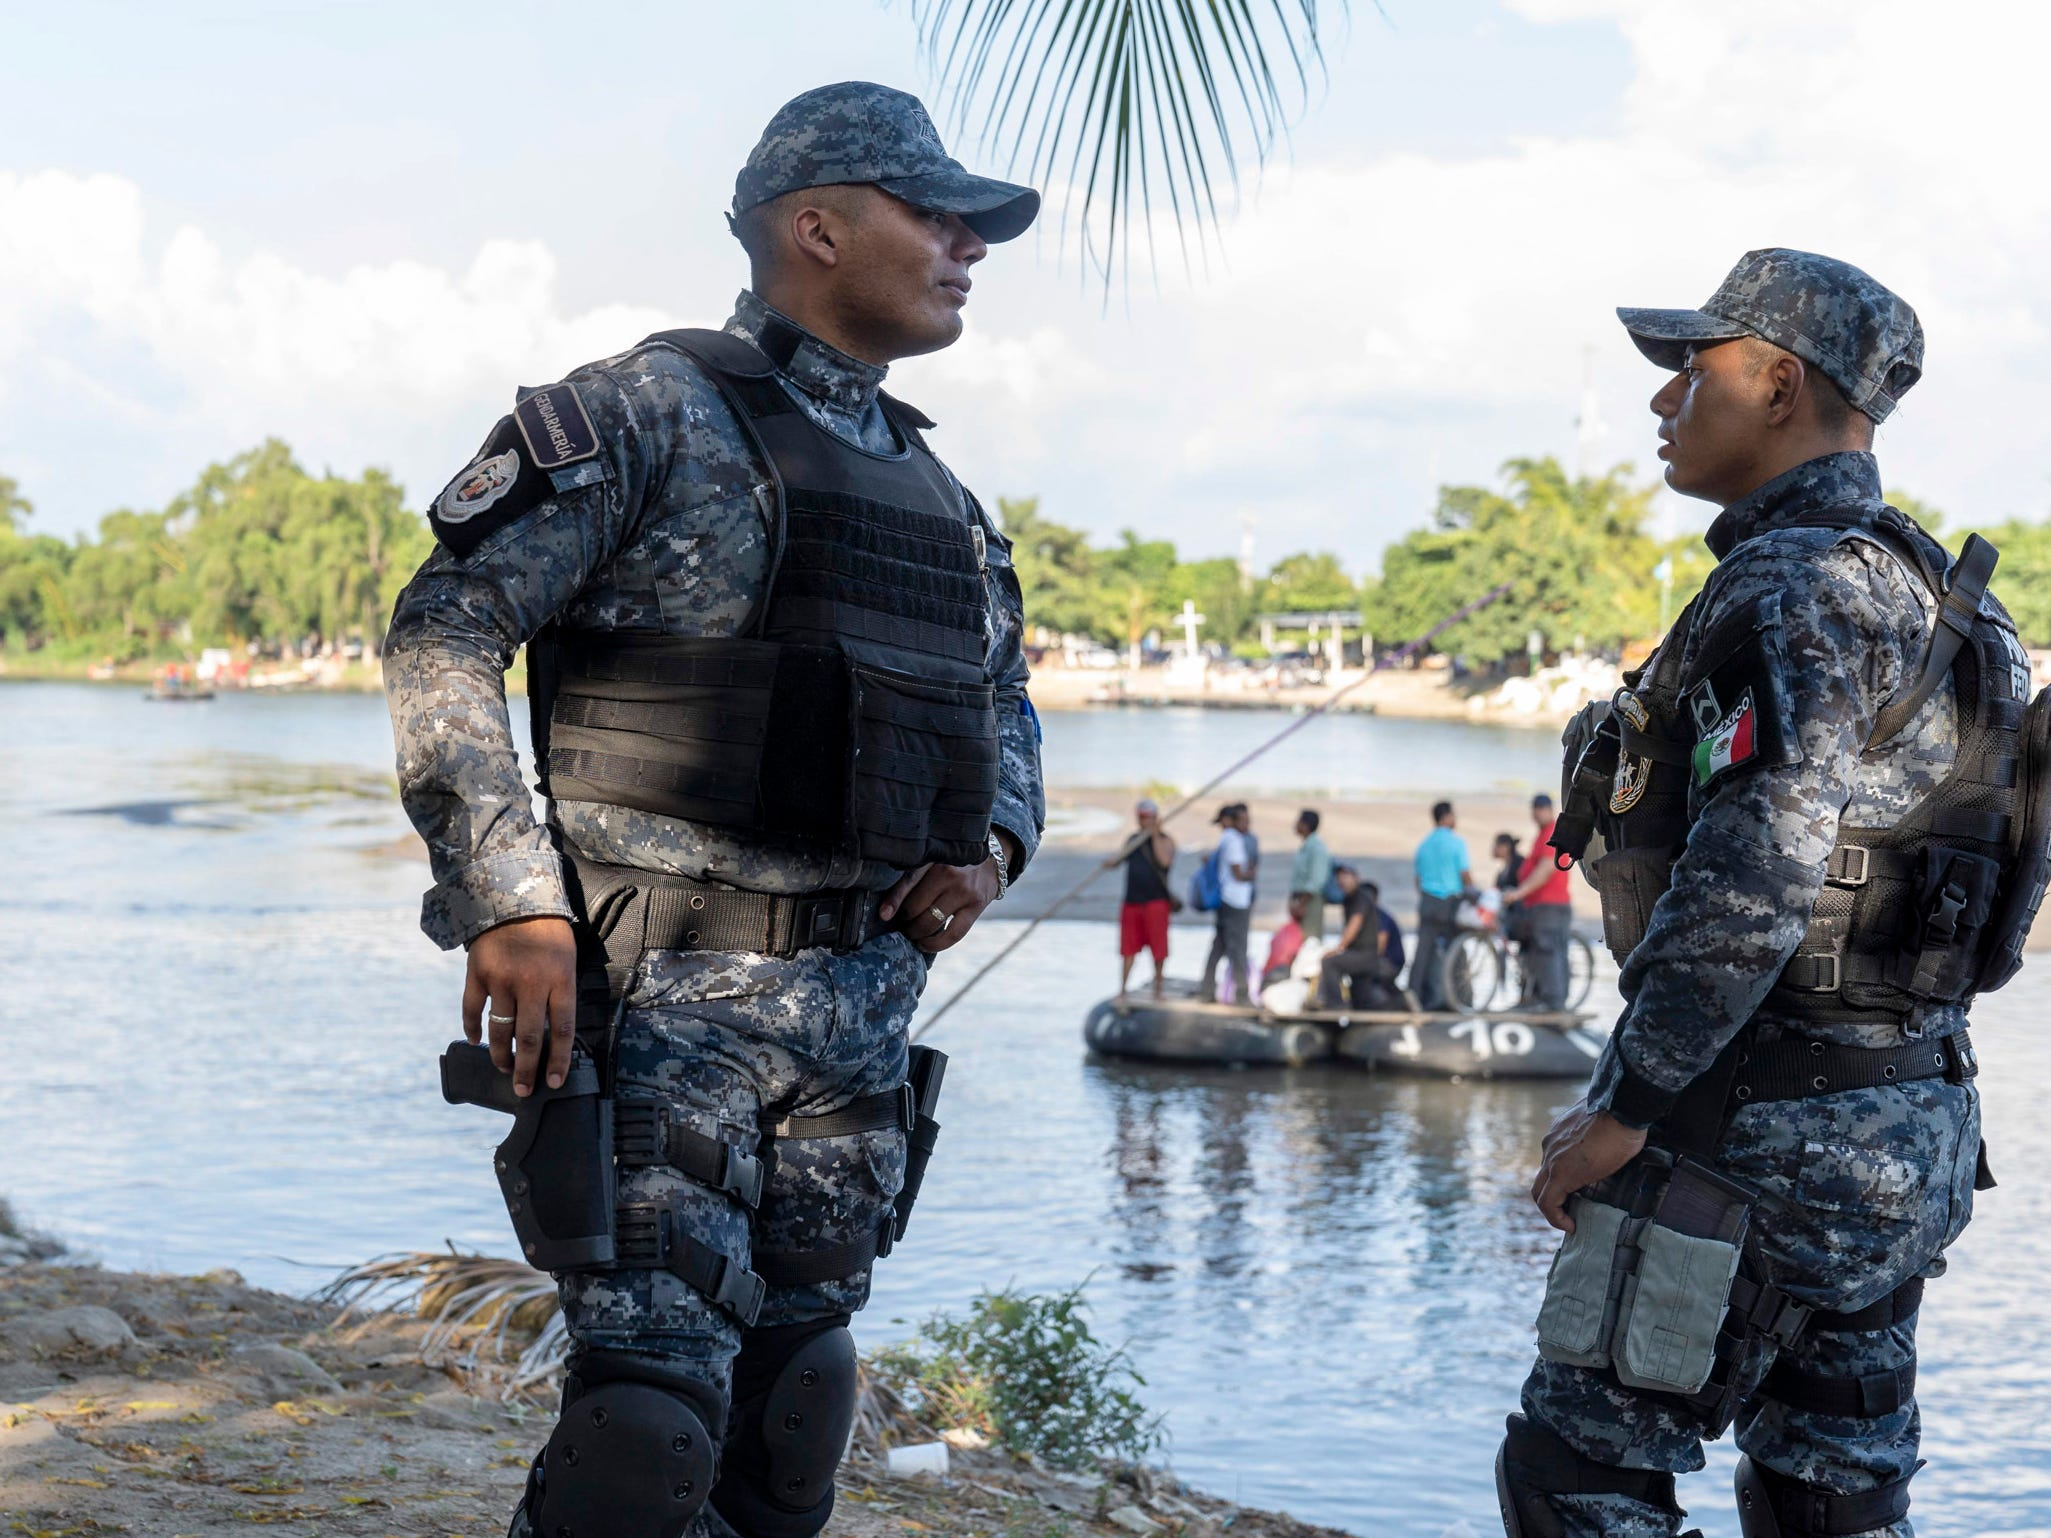 Mexican Federal Police and Immigration officers wait to check identification of the border crossers from Guatemala, who were crossing in a raft at Cuidad Hidalgo, Mexico on Oct. 25, 2018.